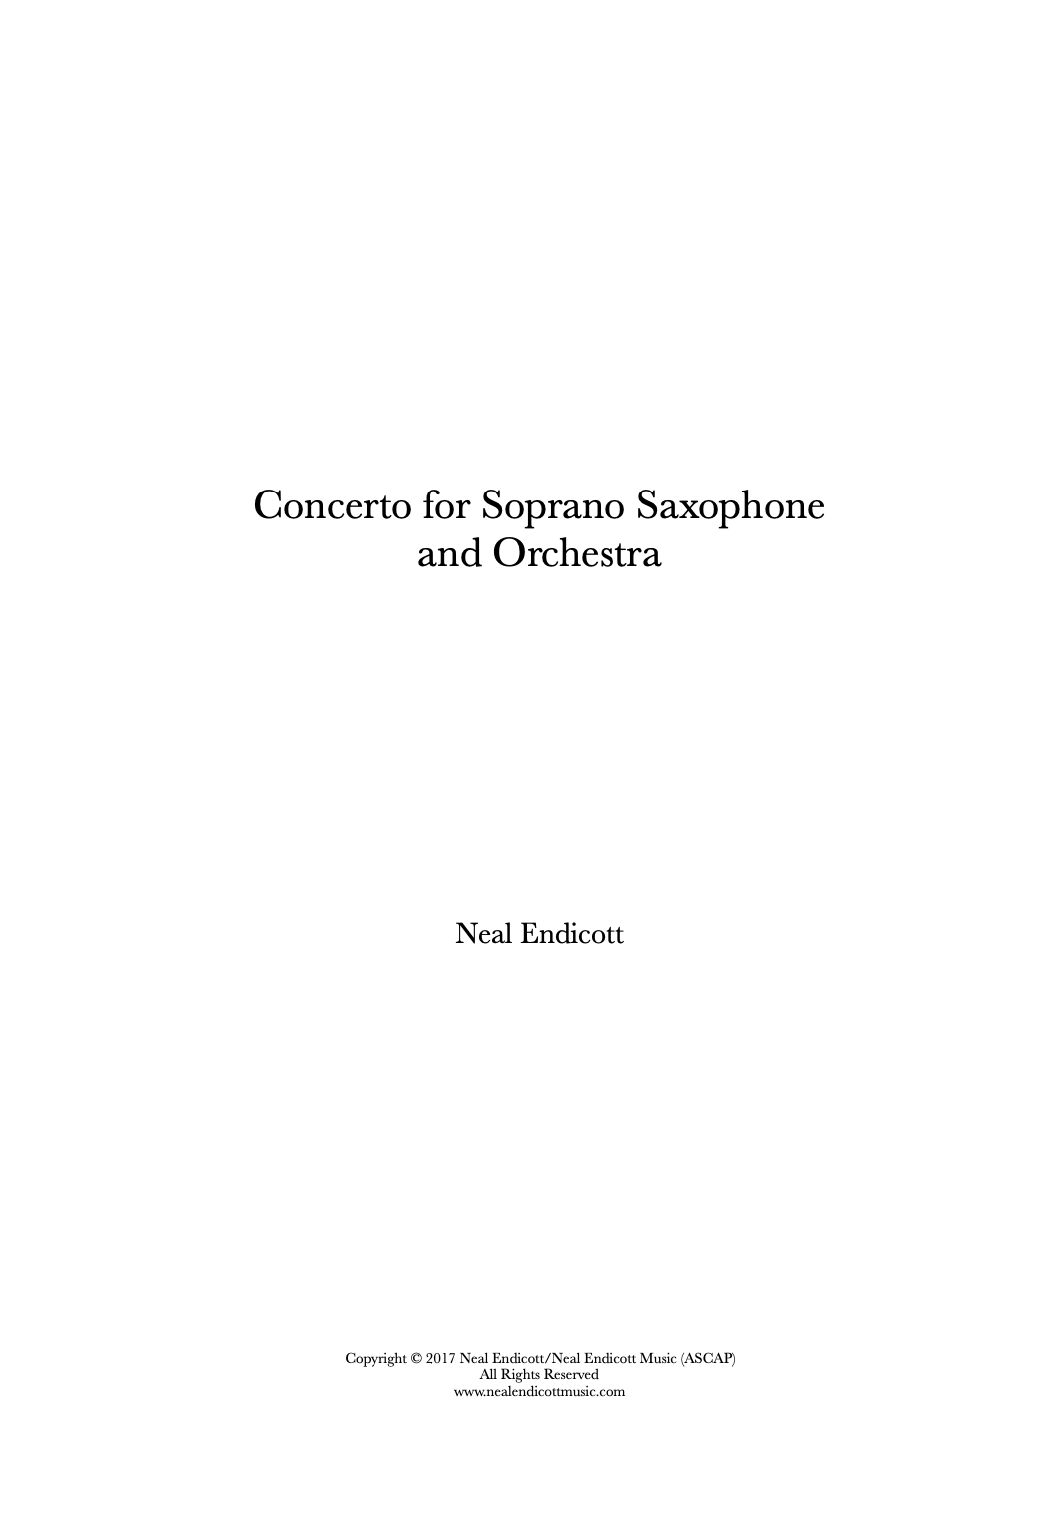 Concerto For Soprano Saxophone And Orchestra by Neal Endicott